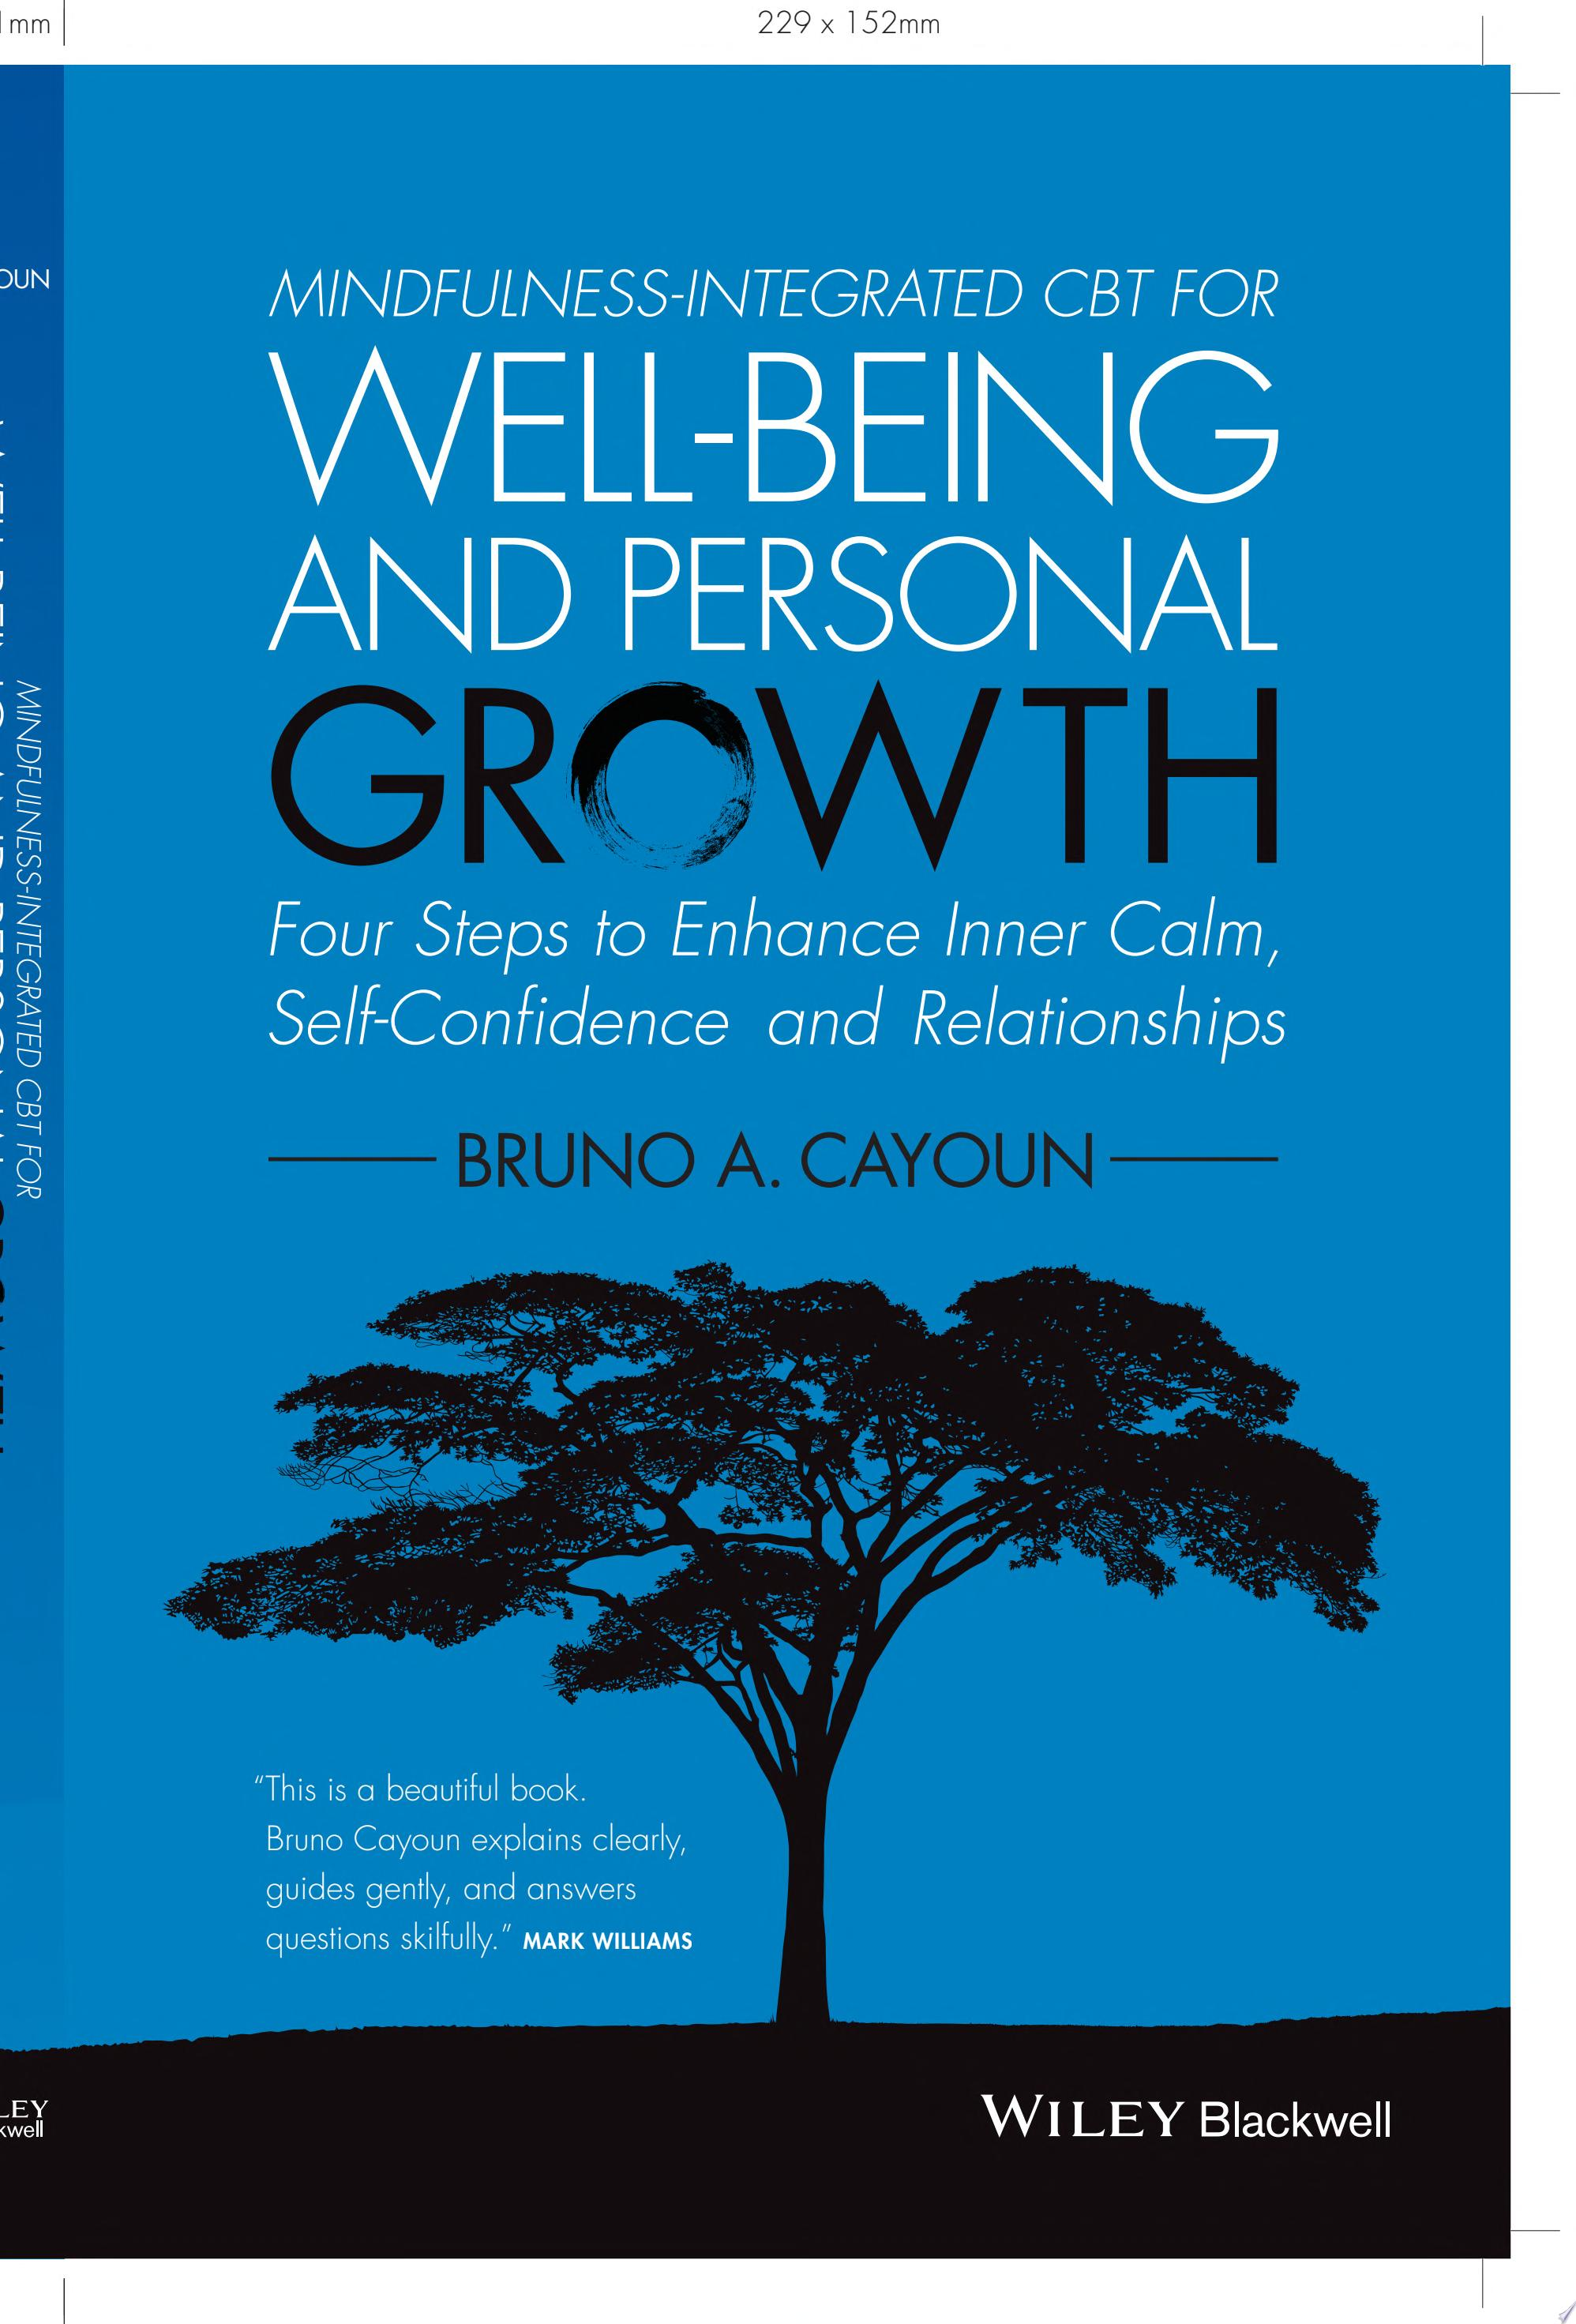 Mindfulness integrated CBT for Well being and Personal Growth